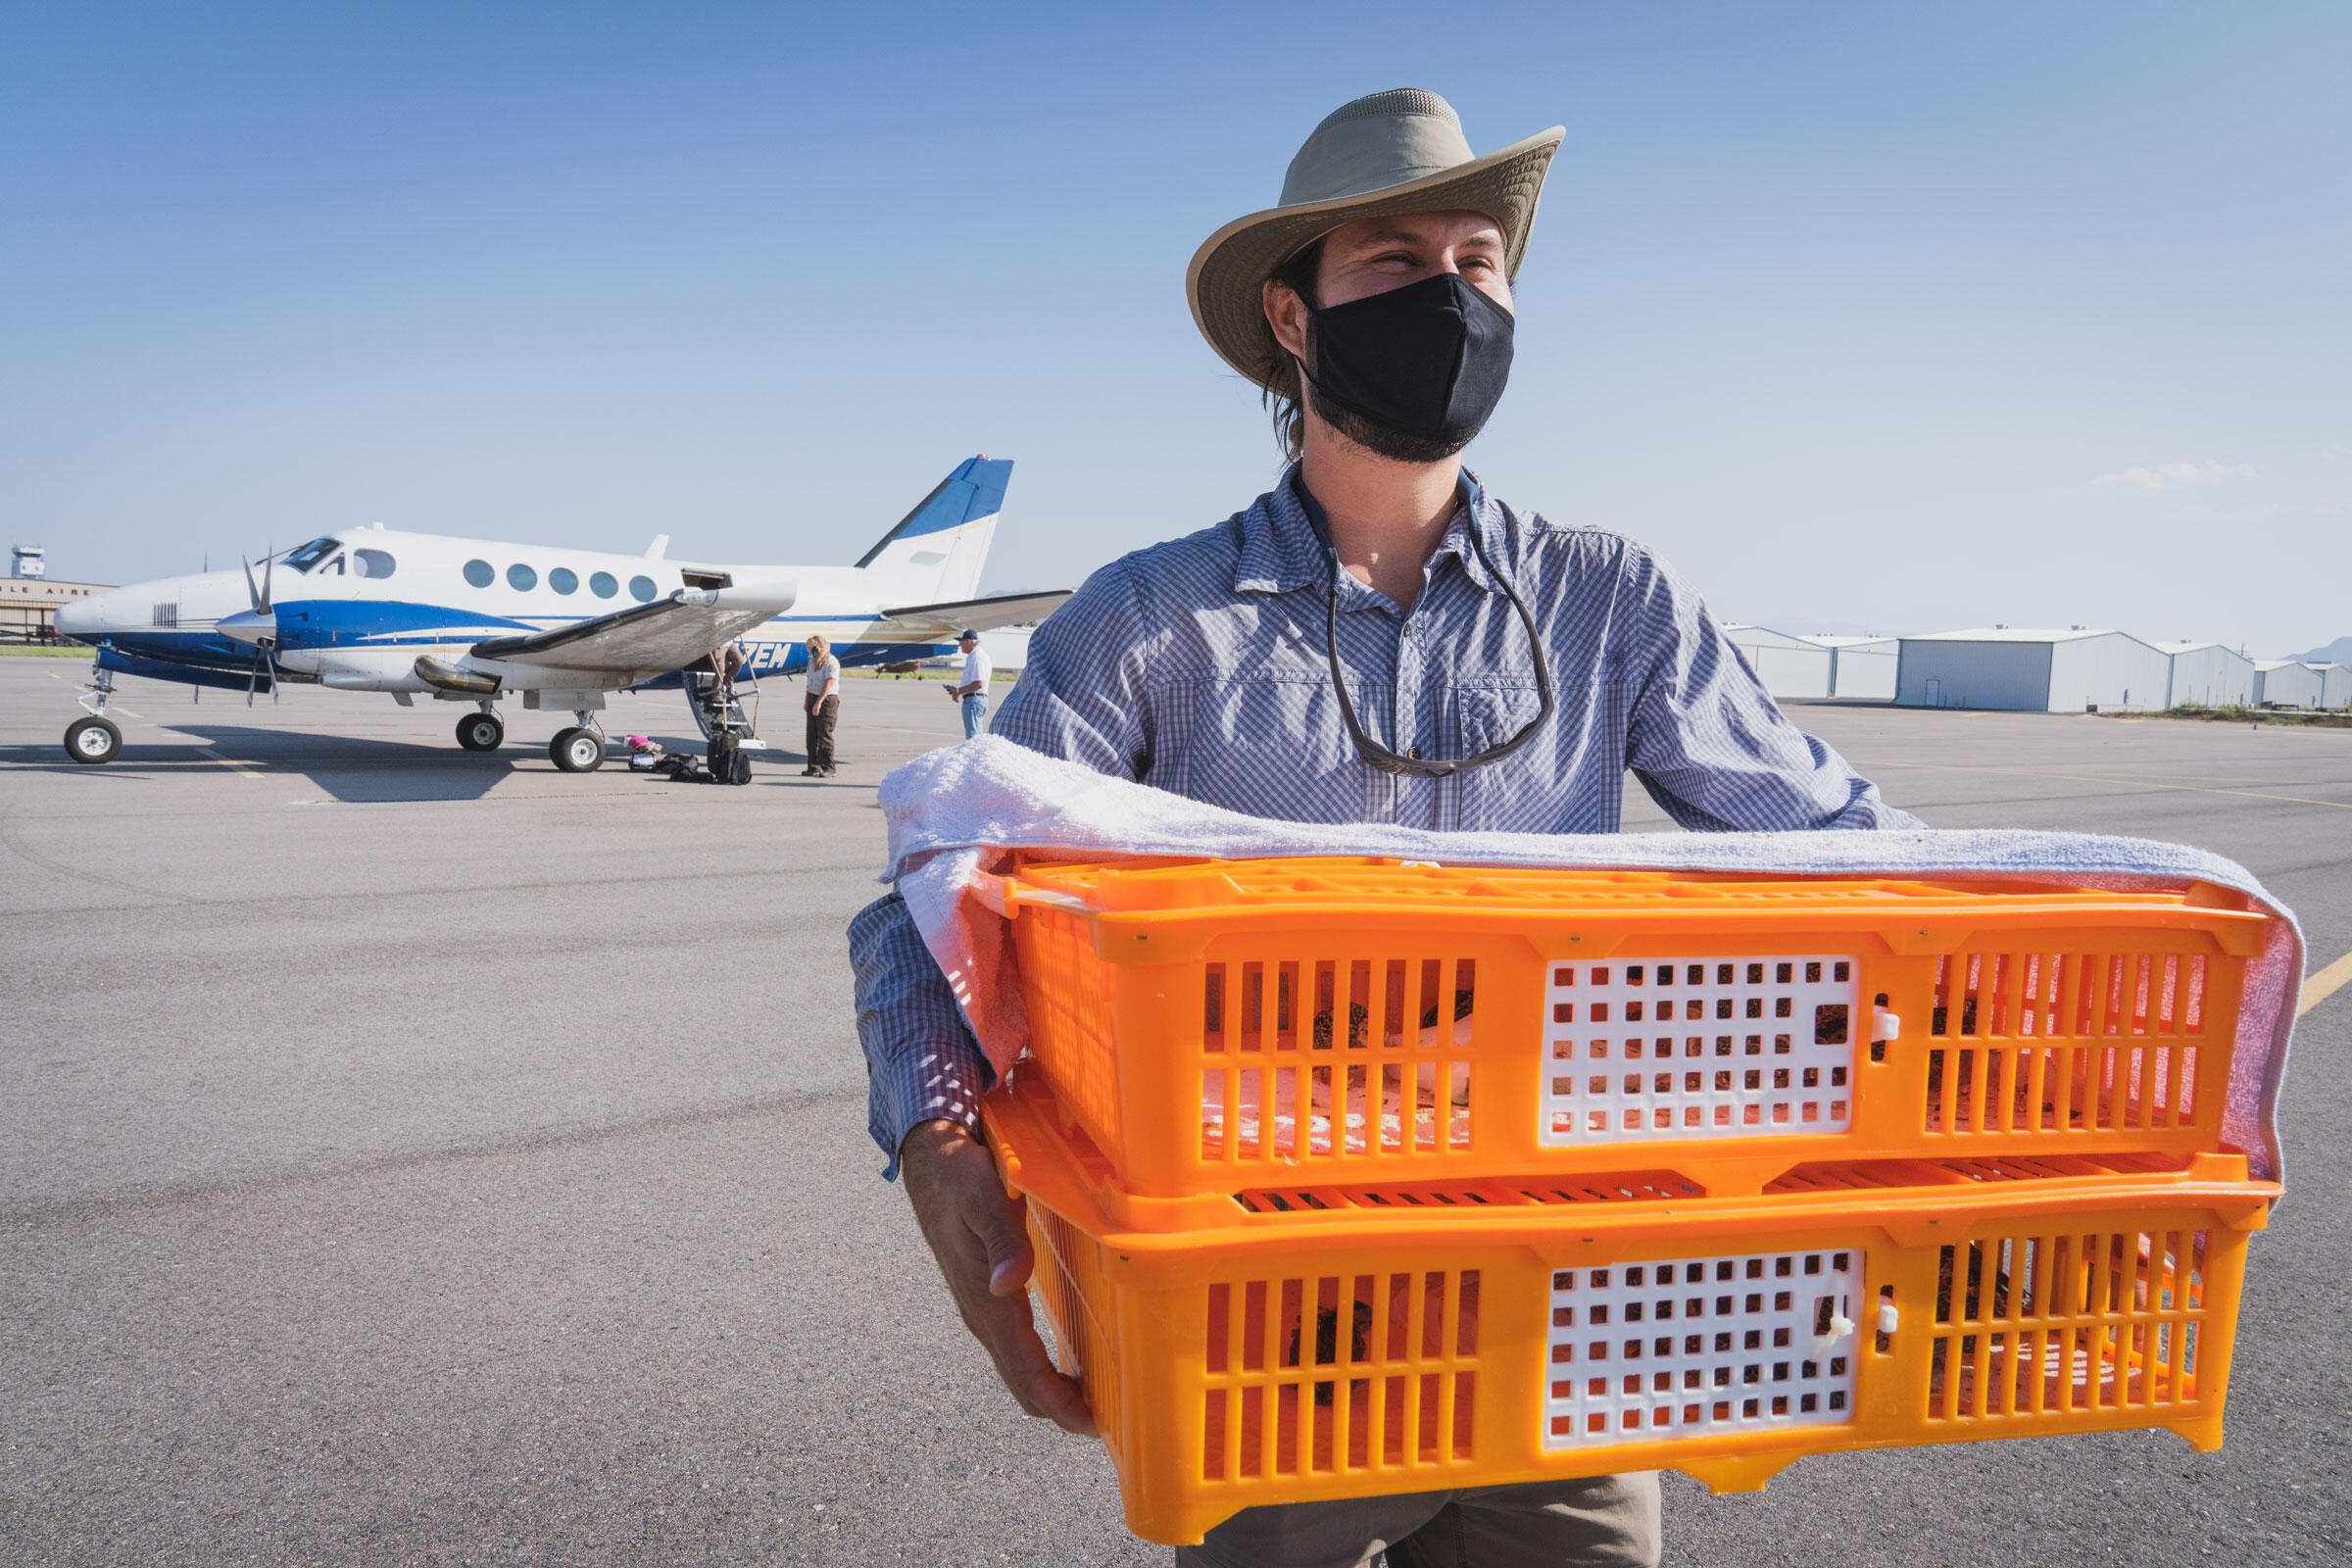 Chicks born in Oklahoma arrive at an airport near Tucson. Pilots, volunteers with the nonprofit Lighthawk, donate their planes and time to fly the chicks to their new home. Morgan Heim